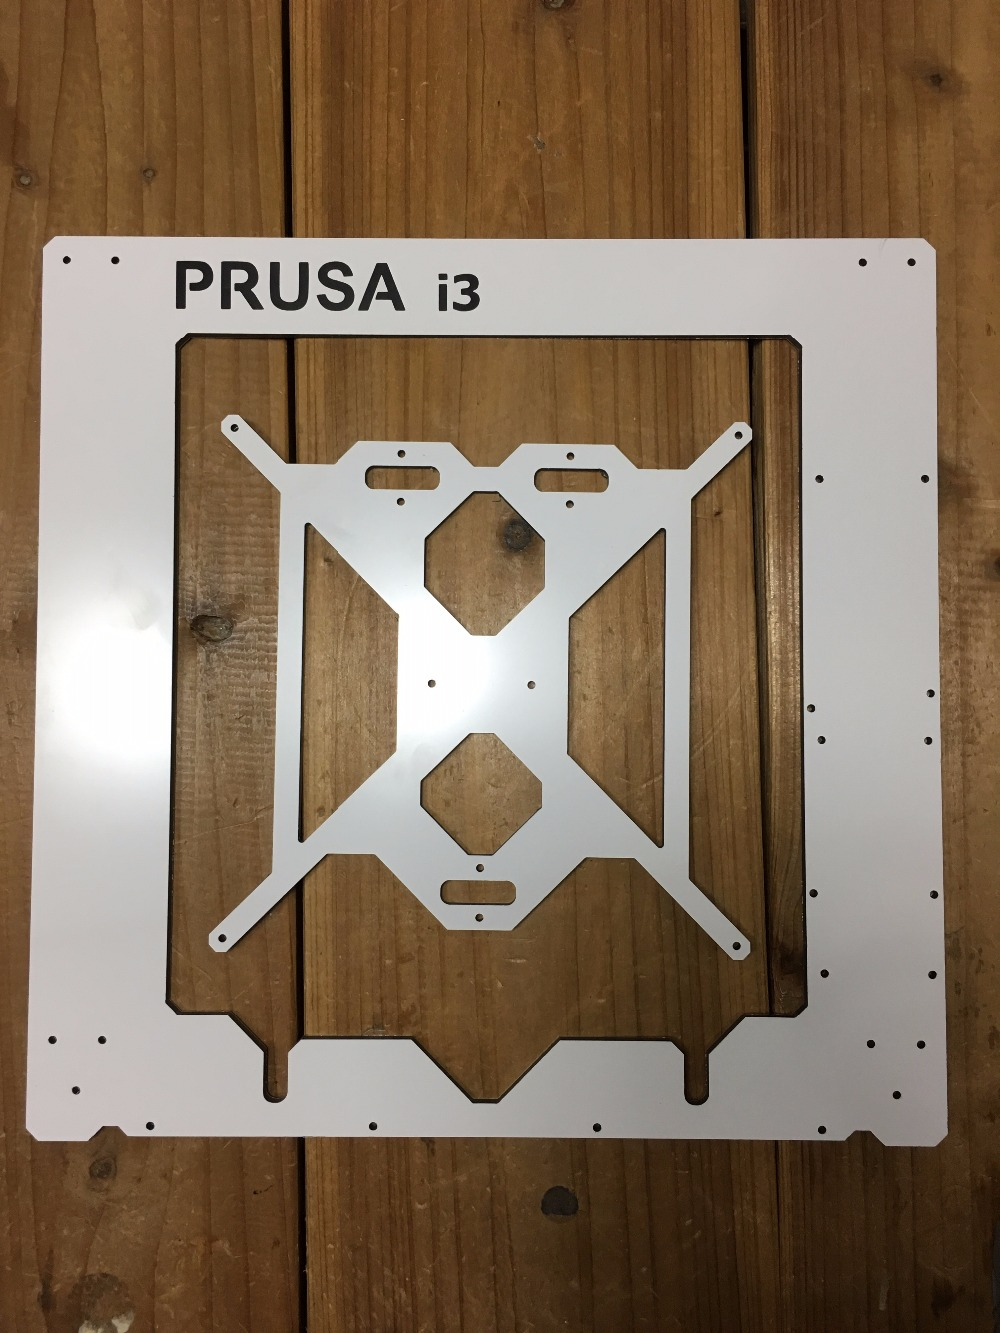 Prusa i3 Rework 3D printer aluminum composite  frame kit RepRap Prusa i3 white color composite plate frame 3D Printer DIY 6 mm metal frame linear guide rail for xzy axix high quality precision prusa i3 plus creality 3d cr 10 400 400 3d printer diy kit